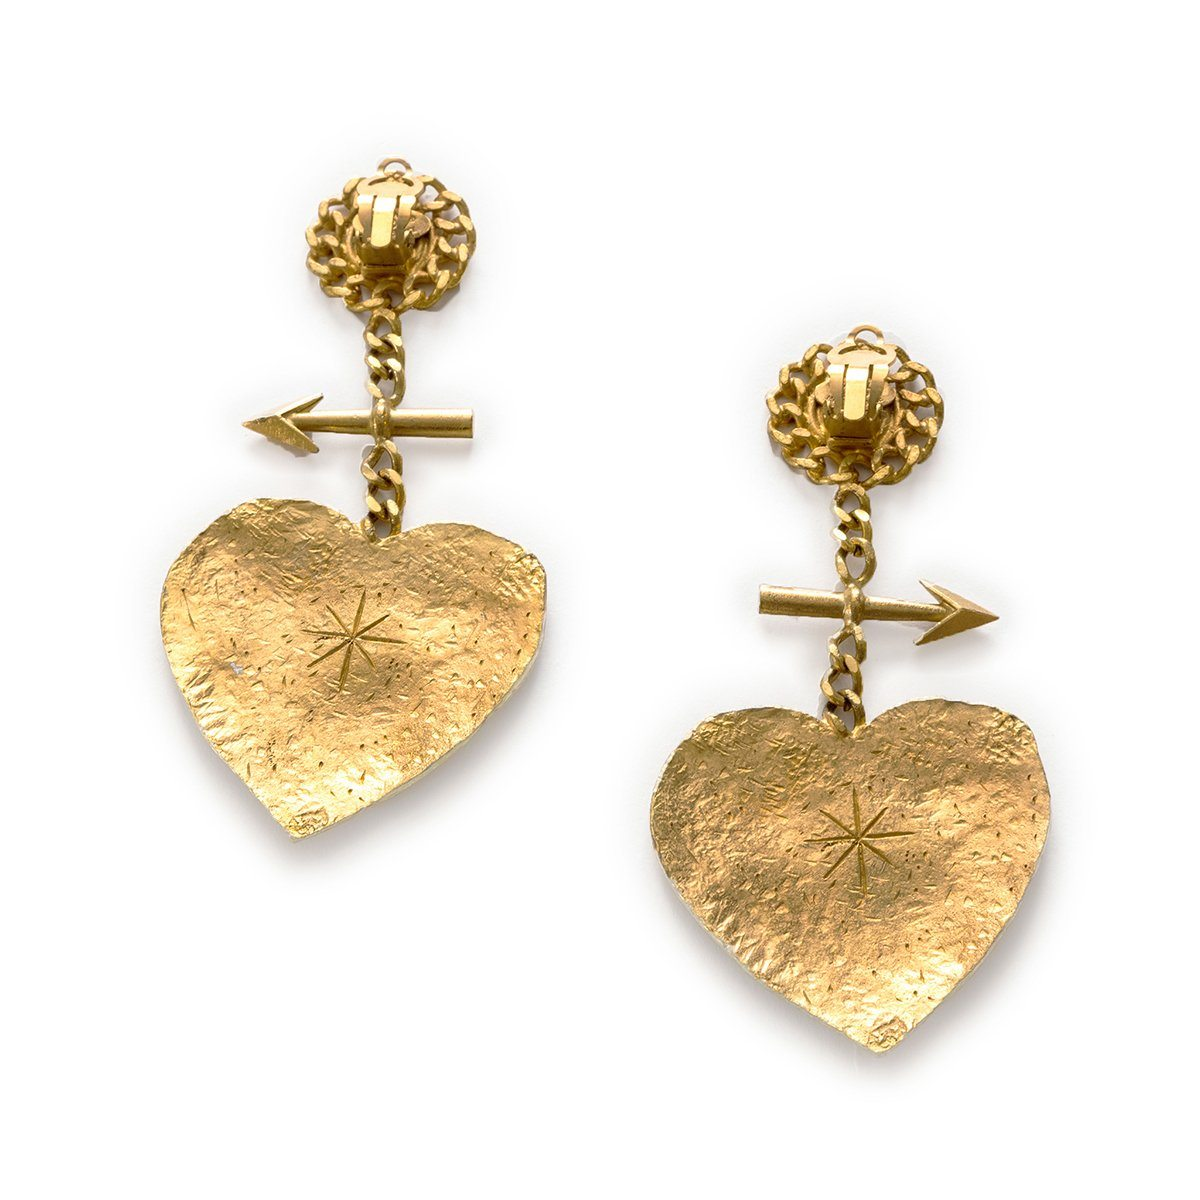 Chanel Cambon Paris Graffiti Heart Earrings 2